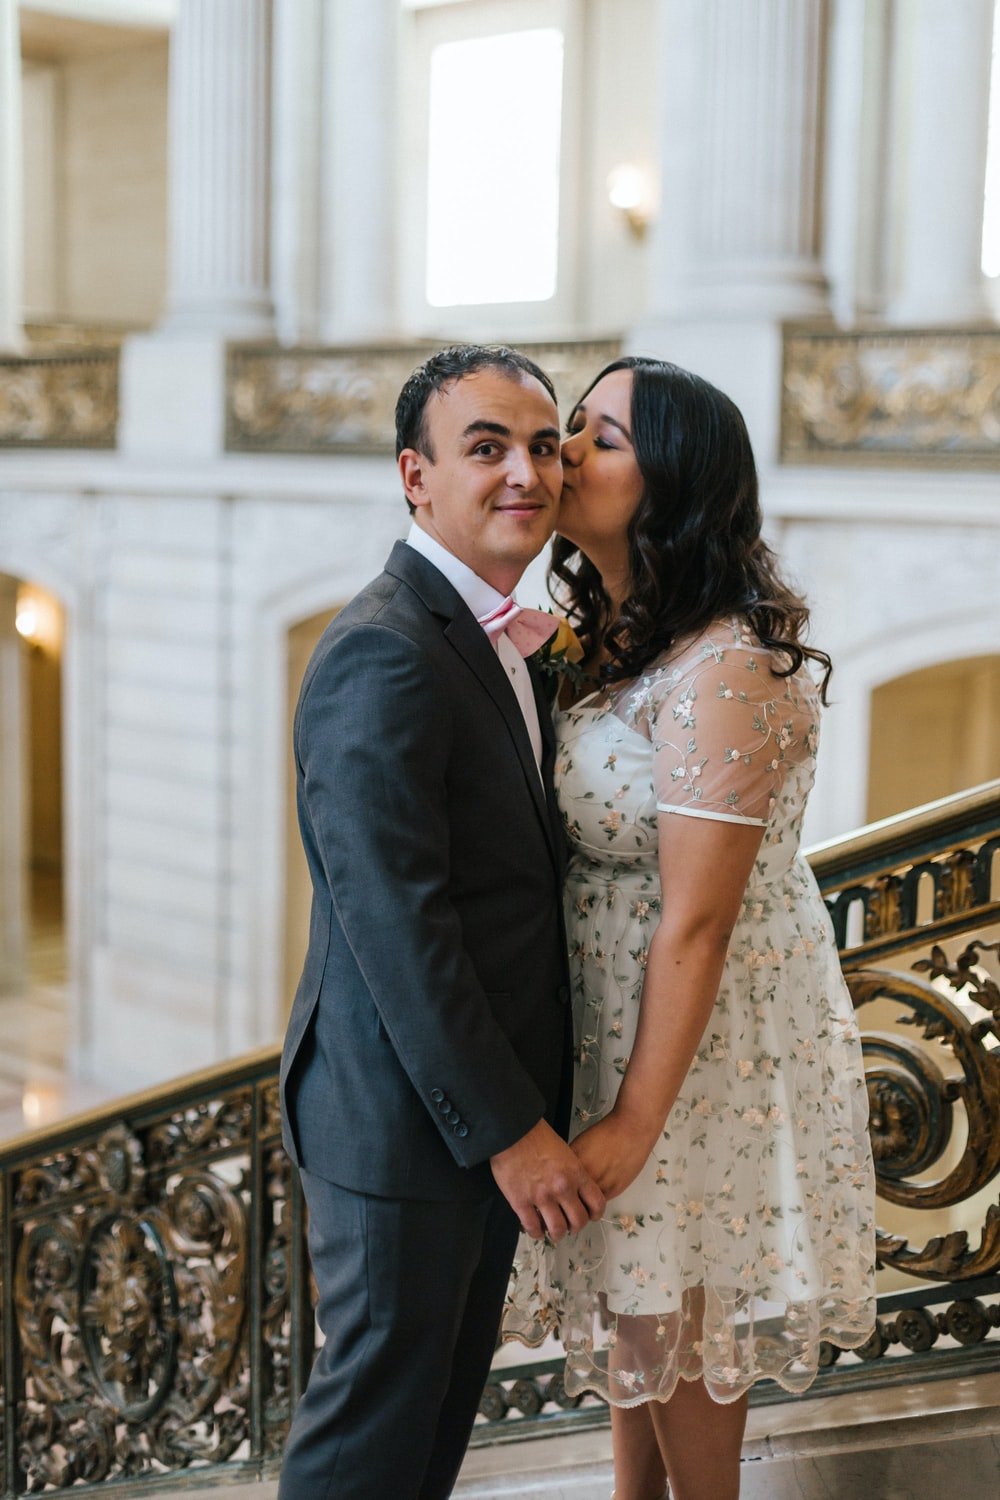 woman kissing man on cheek while standing on stair